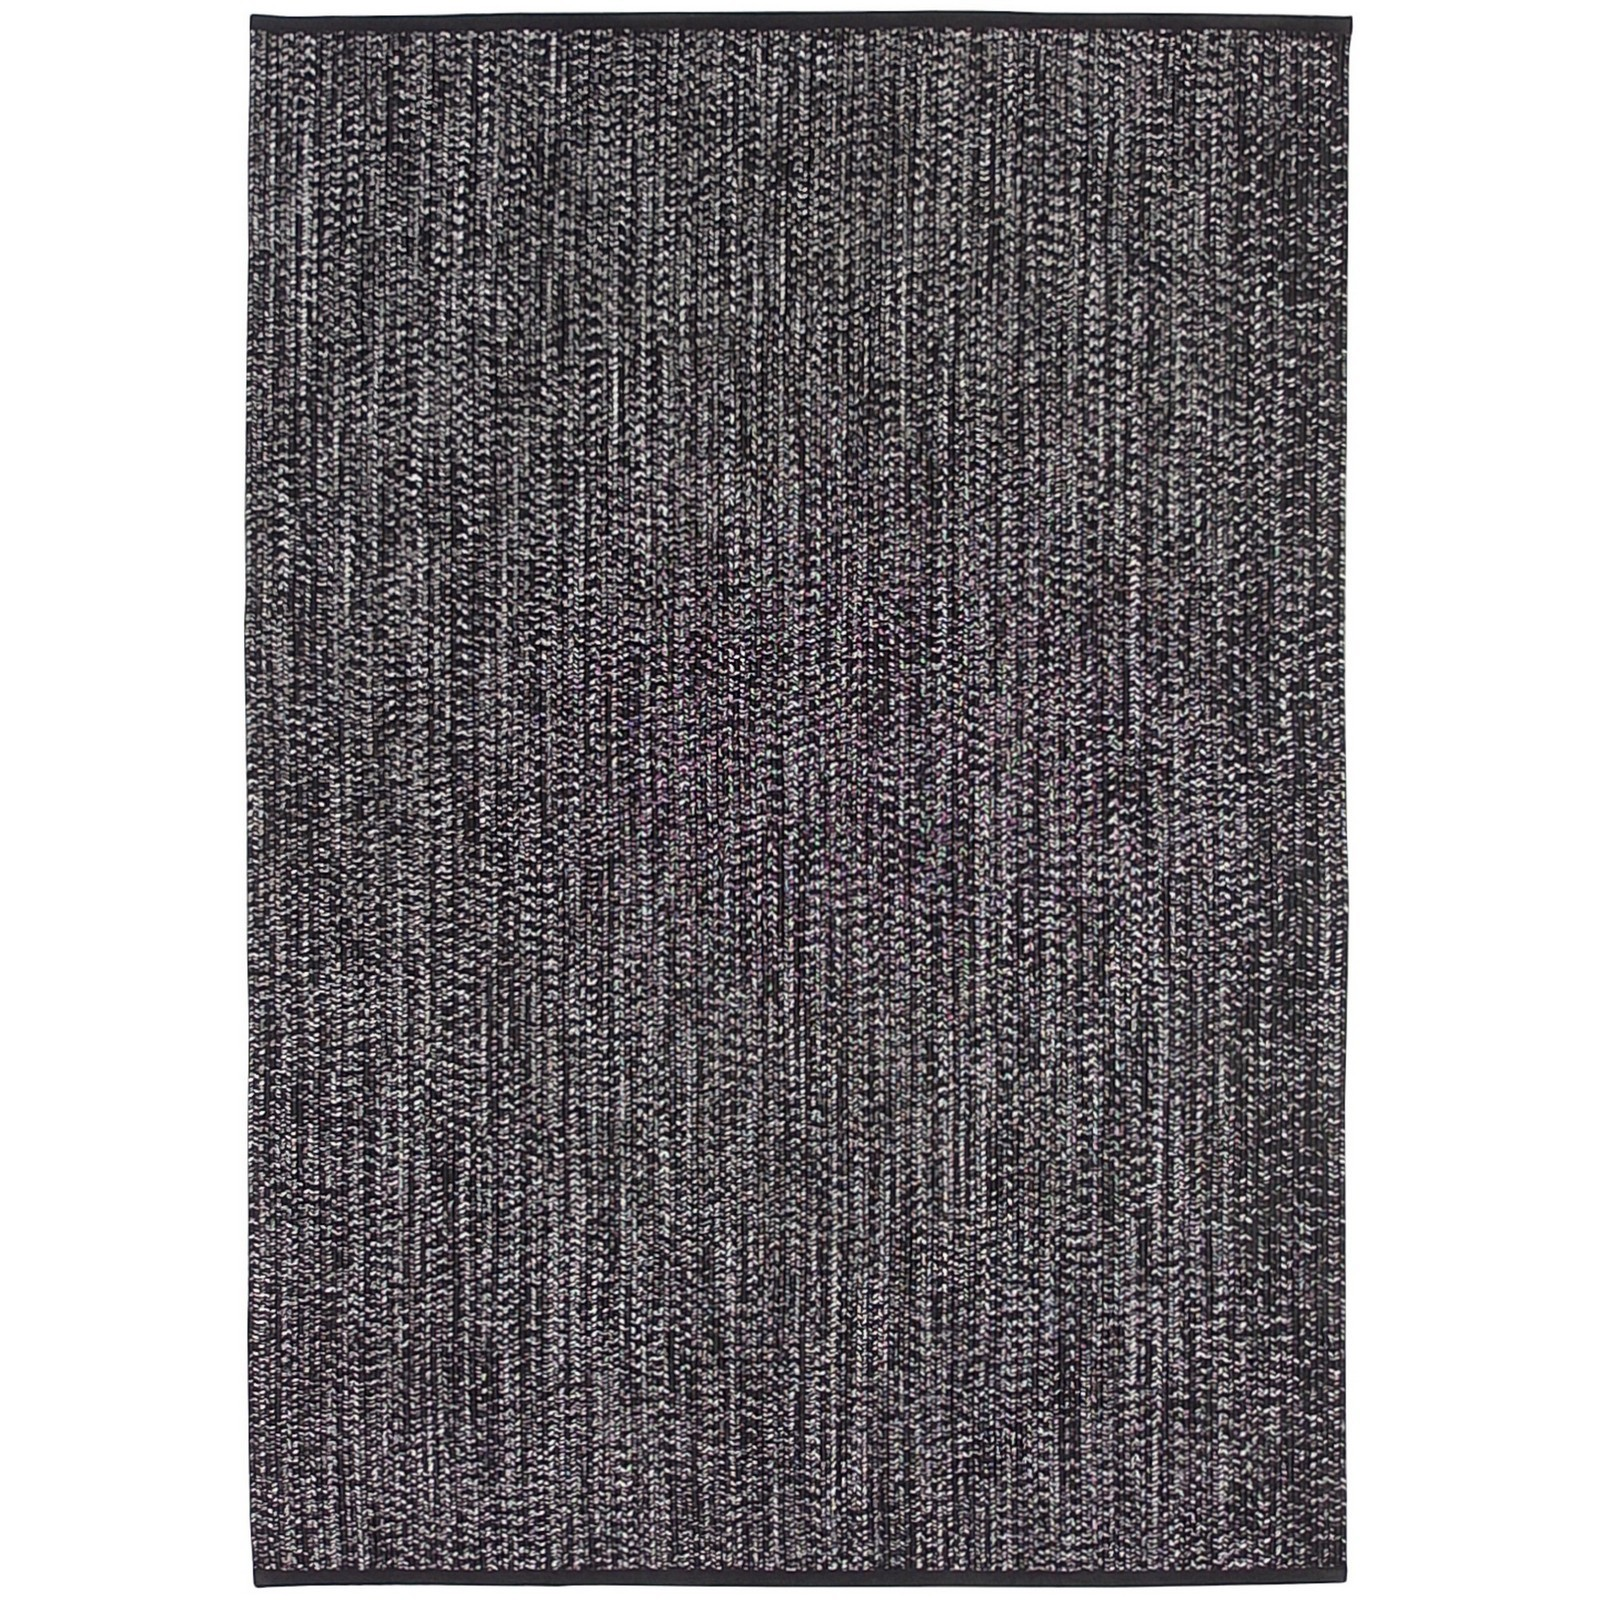 Seasons Stripe Indoor/Outdoor Rug, 250x350cm, Charcoal